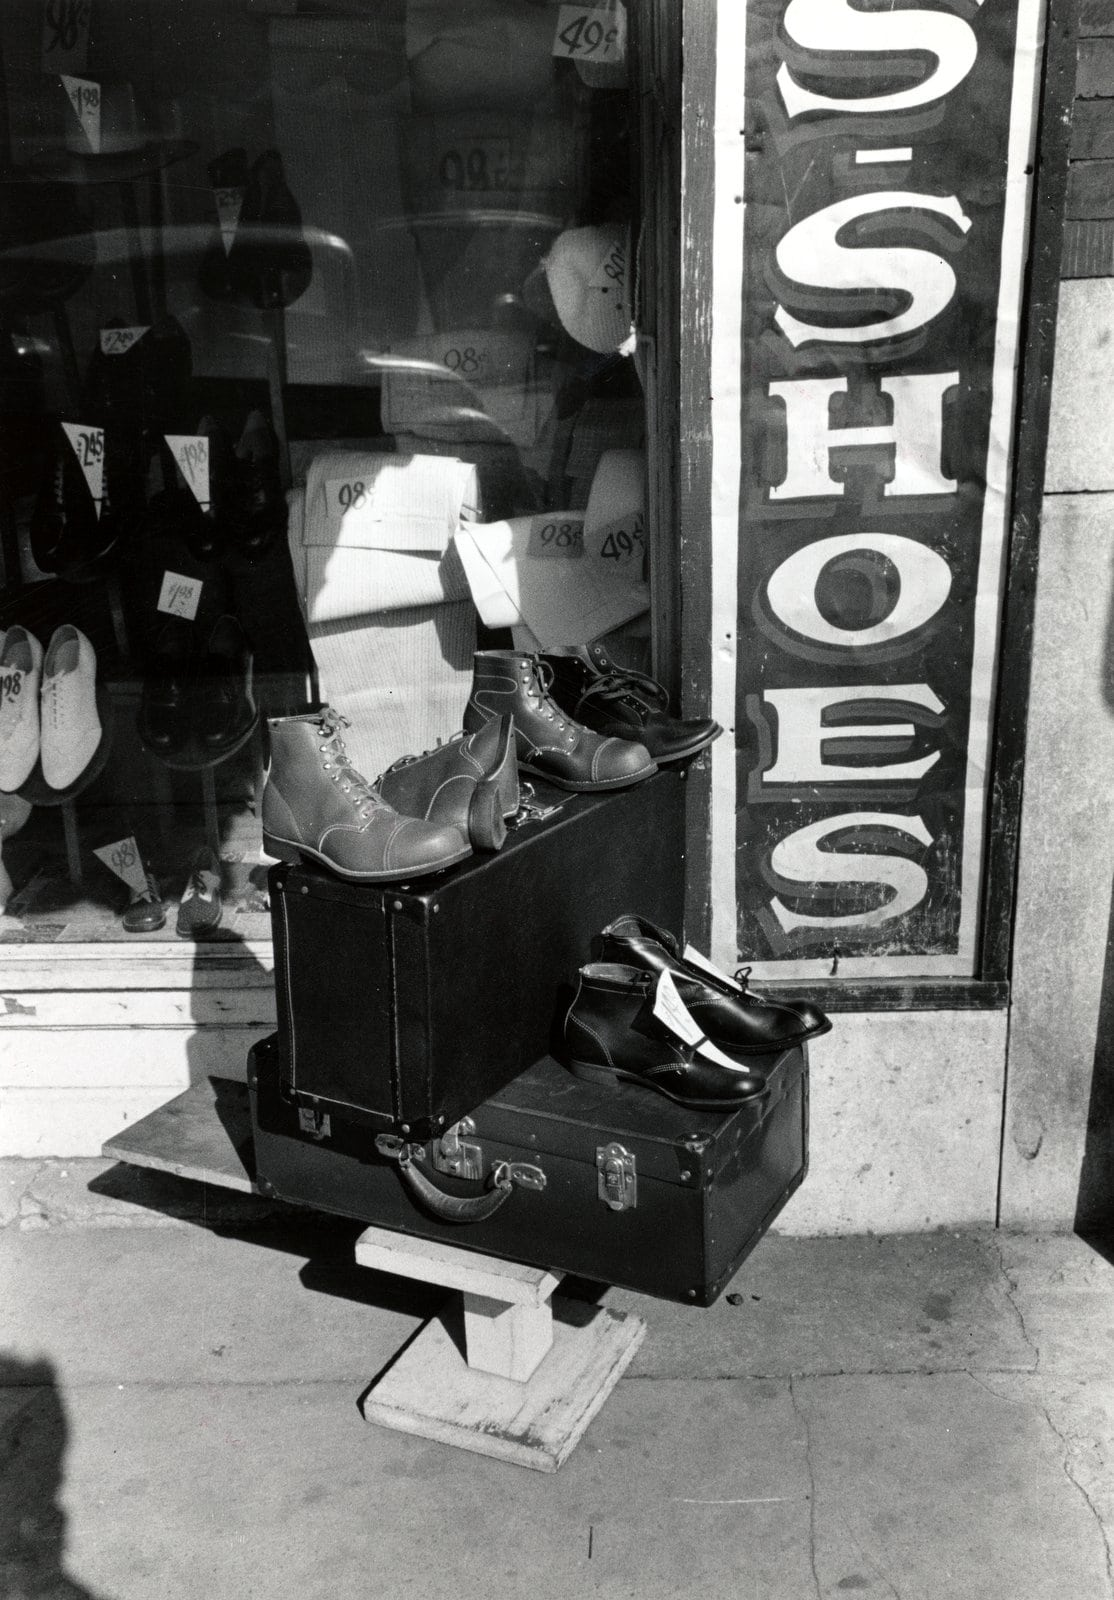 Display in front of shoe store, Muskogee, Oklahoma (1939 via NYPL)